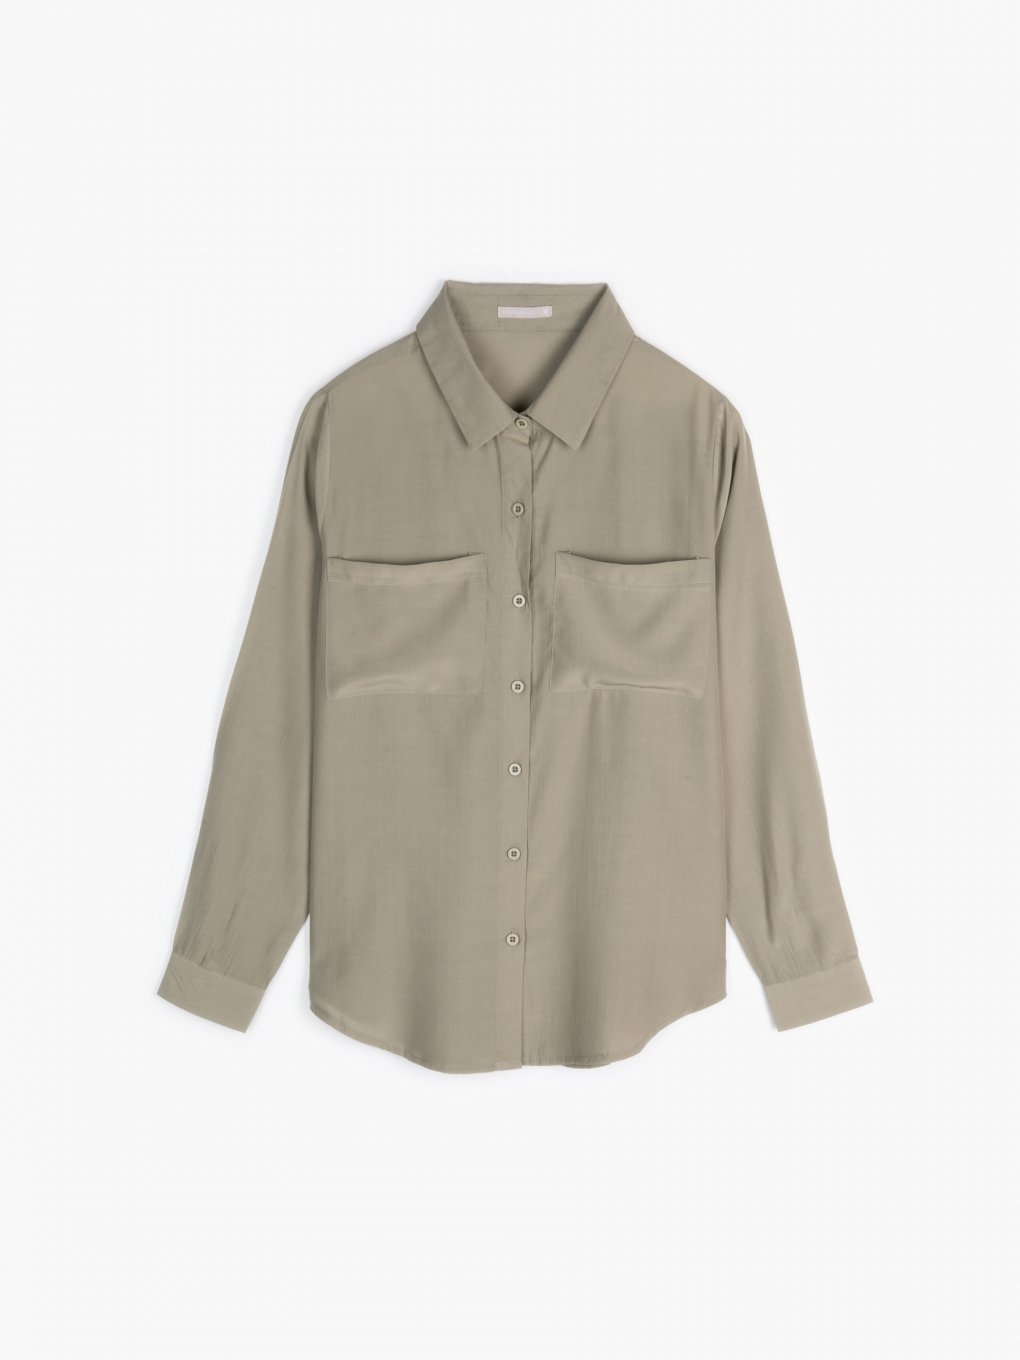 Plain blouse with chest pockets